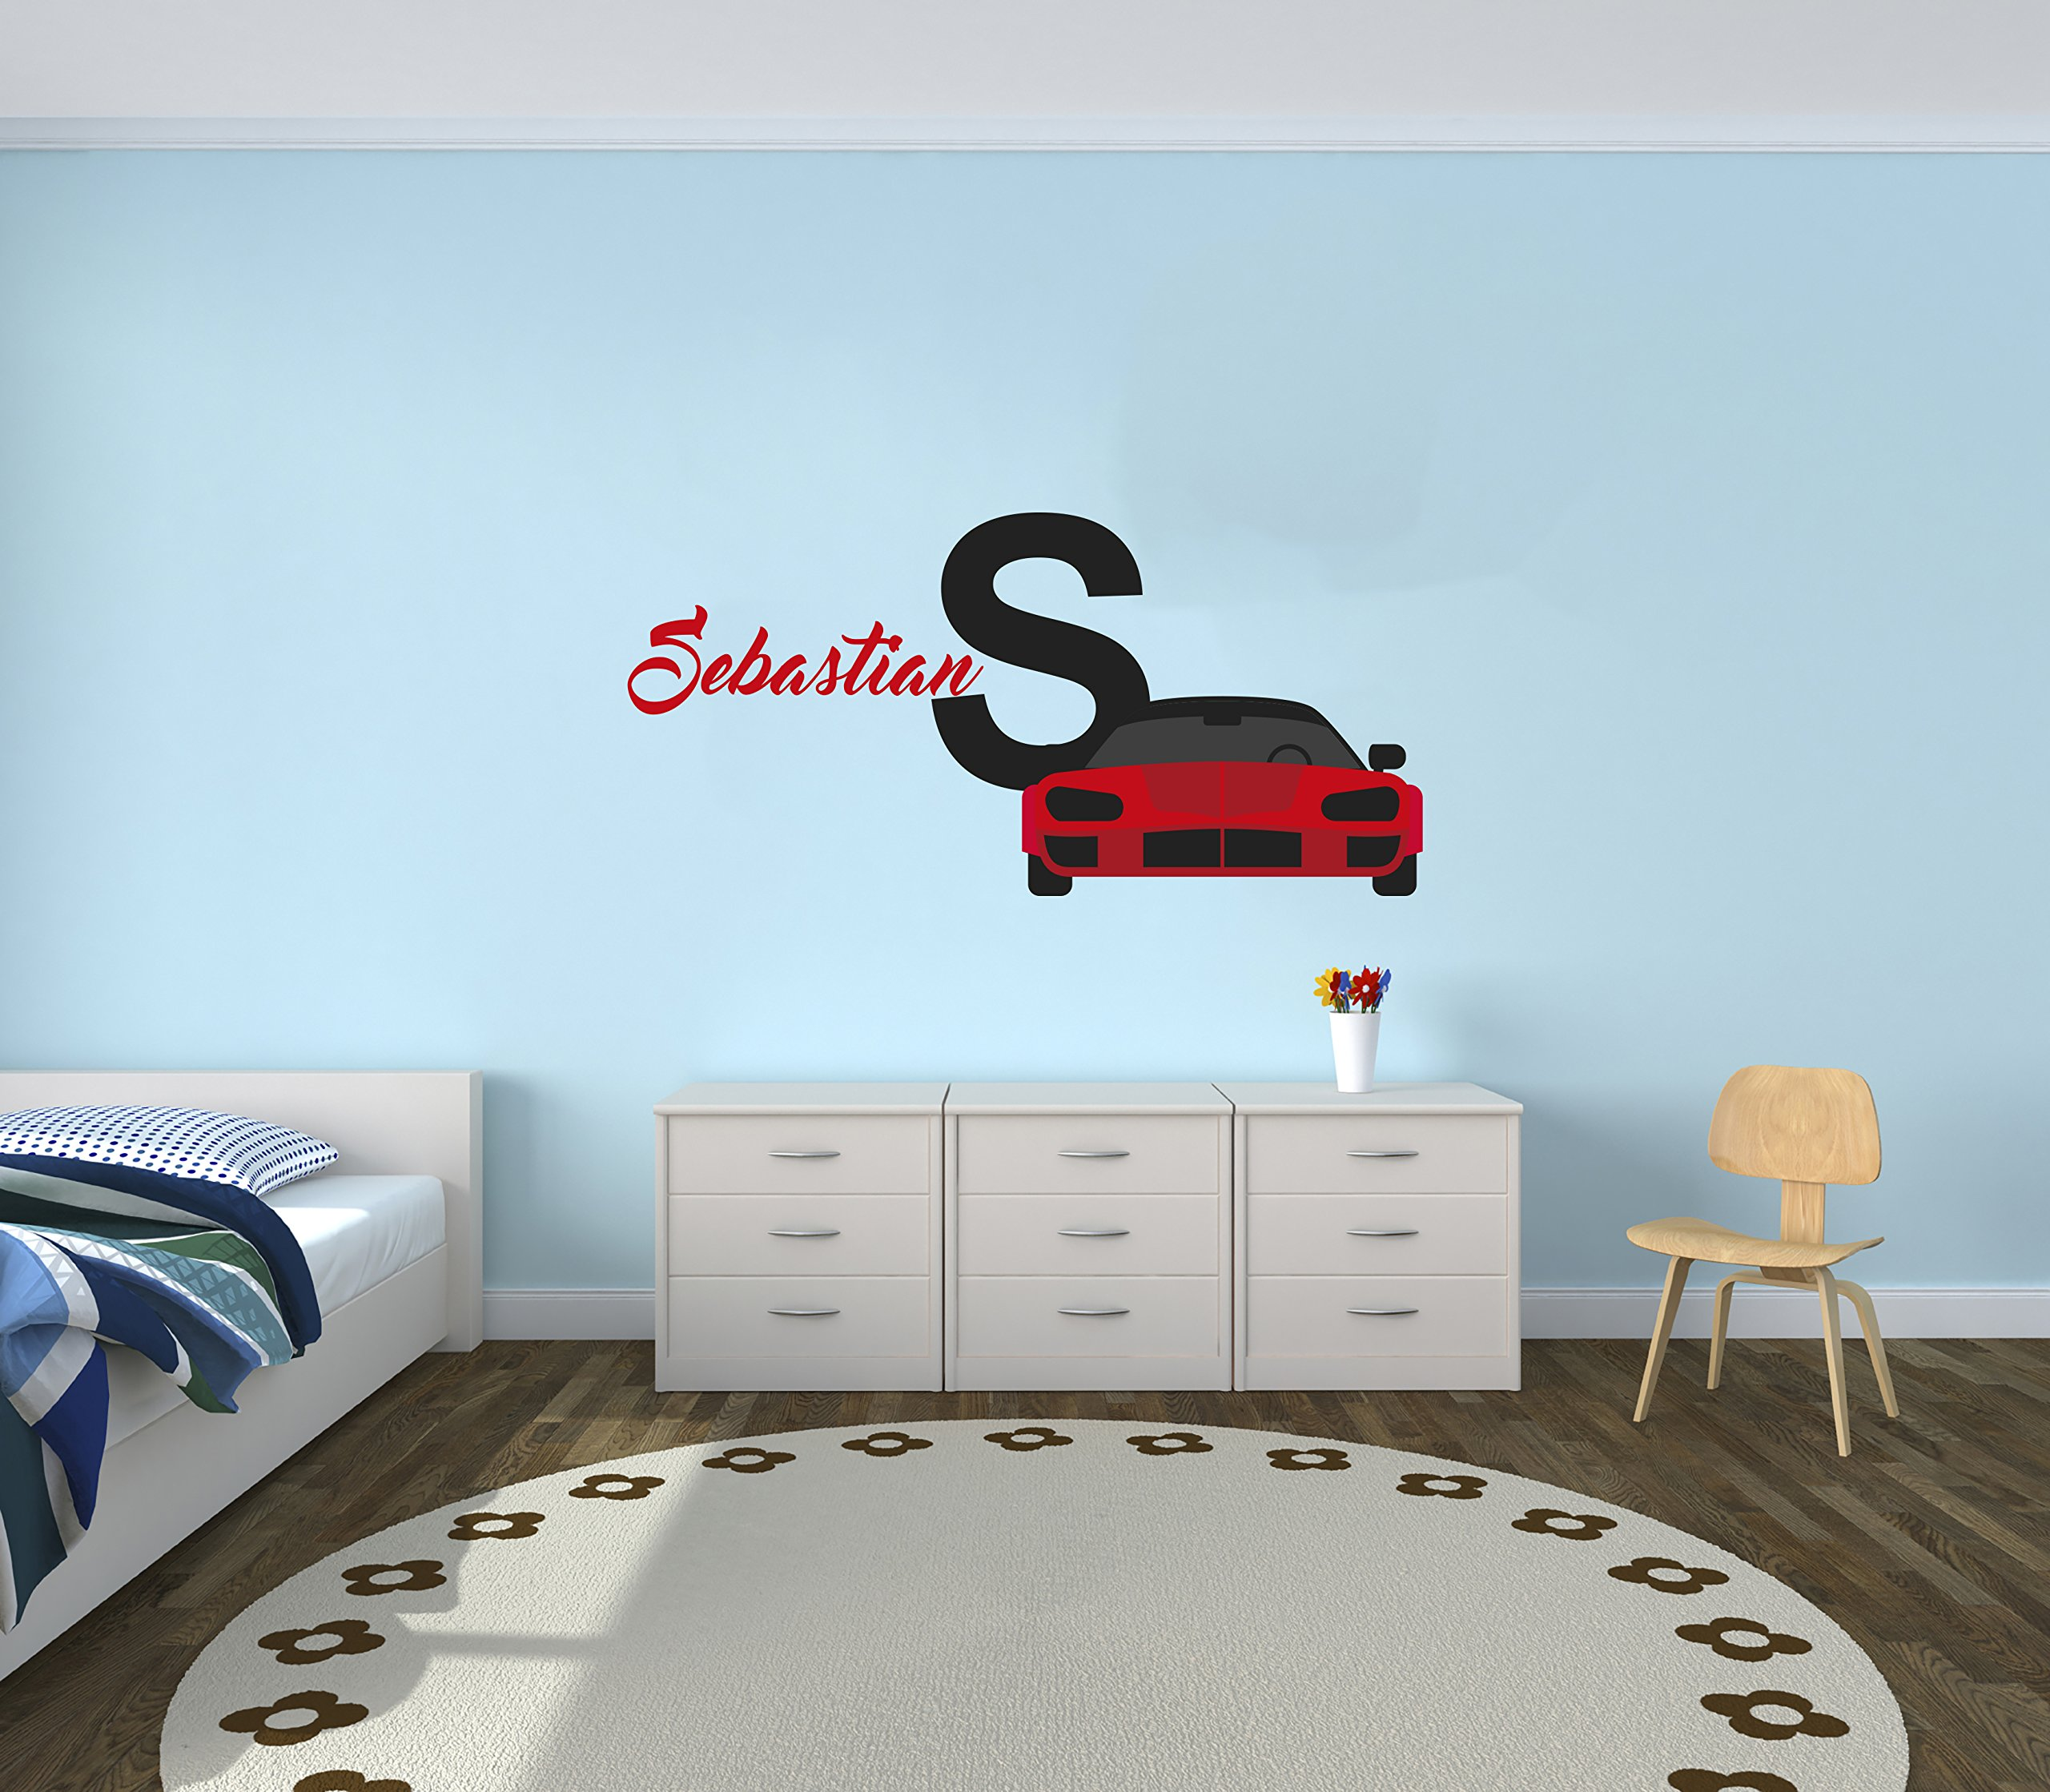 Custom Name Sport Car - Luxury Best Seller Series - Baby Boy Decoration - Mural Wall Decal Sticker For Home Interior Decoration Car Laptop (AM) (Wide 22'' x 10'' Height)